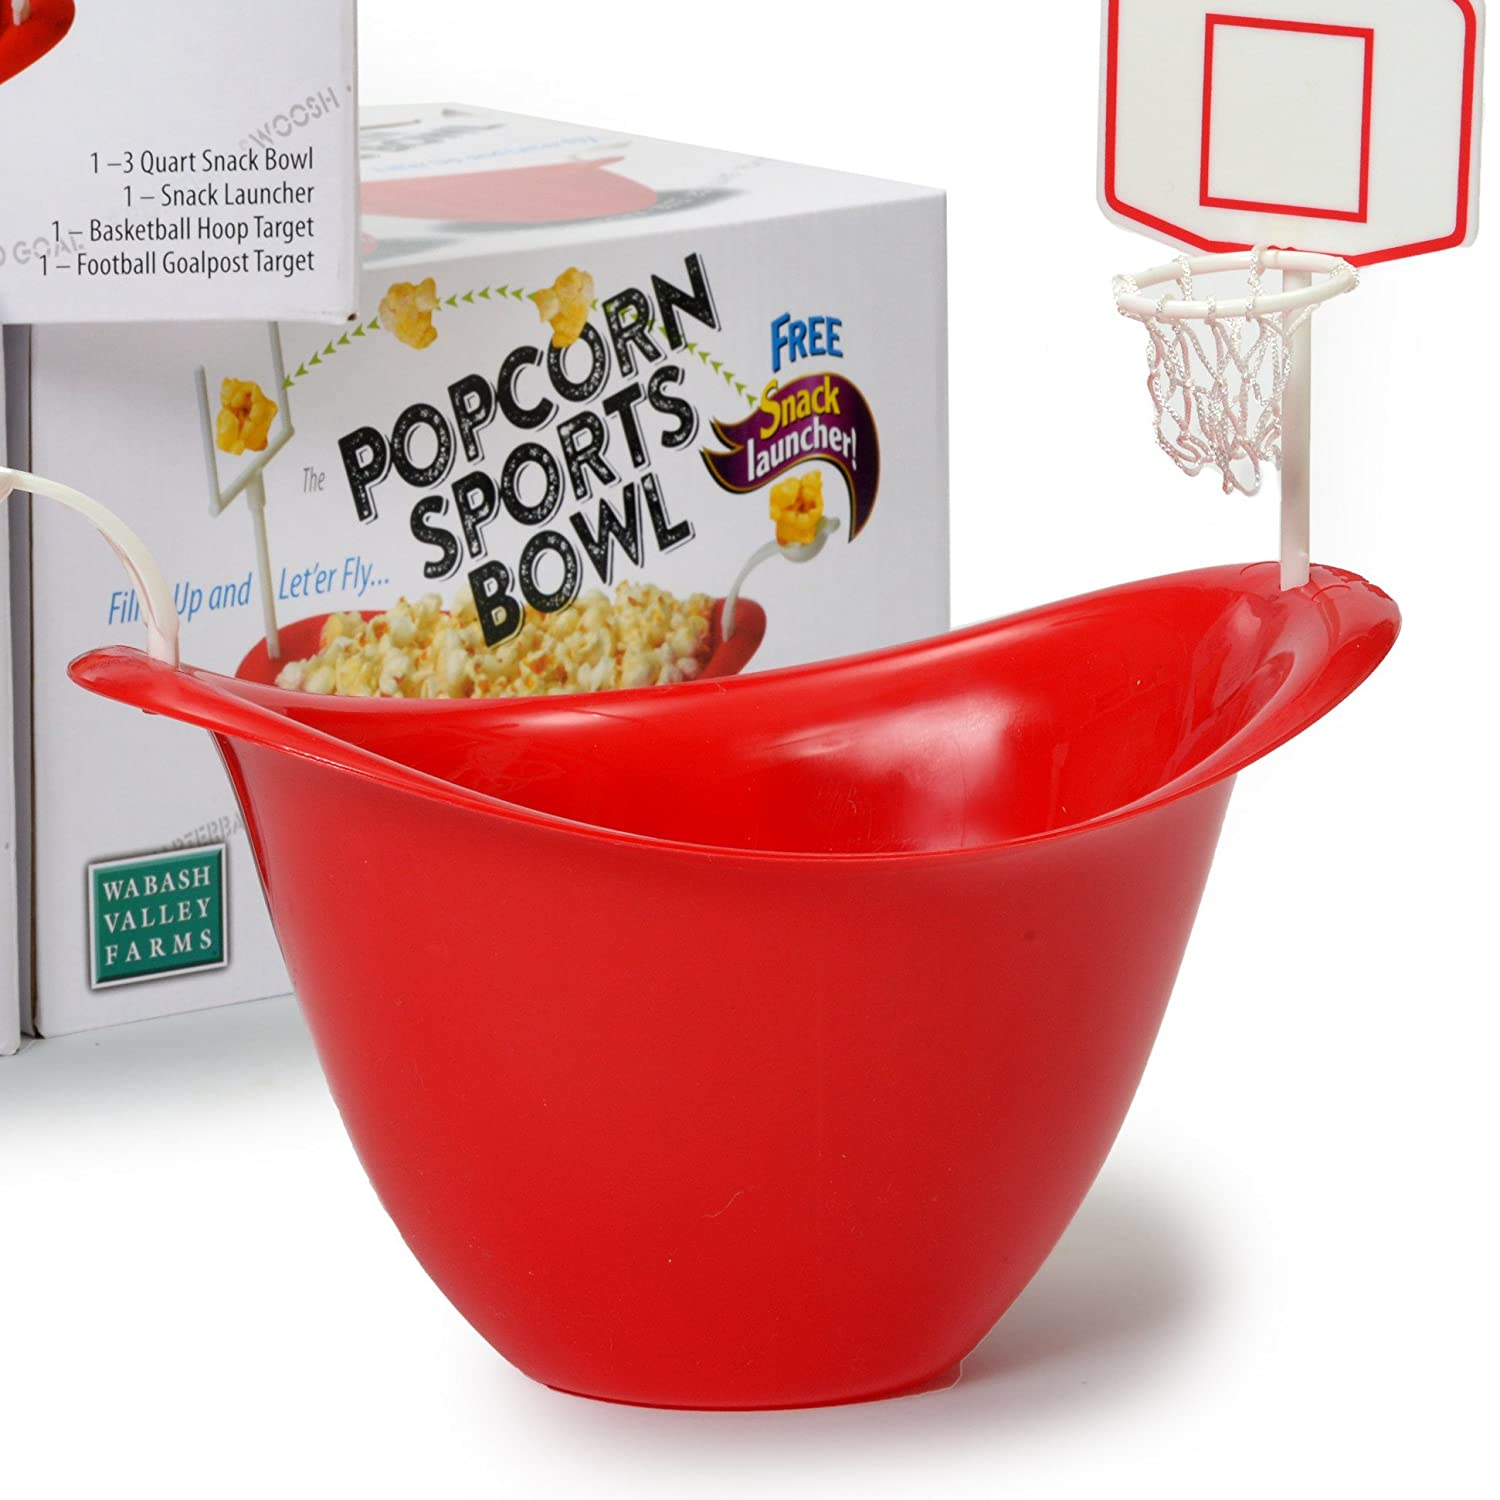 Wabash Valley Farms Popcorn Sports Bowl 44062